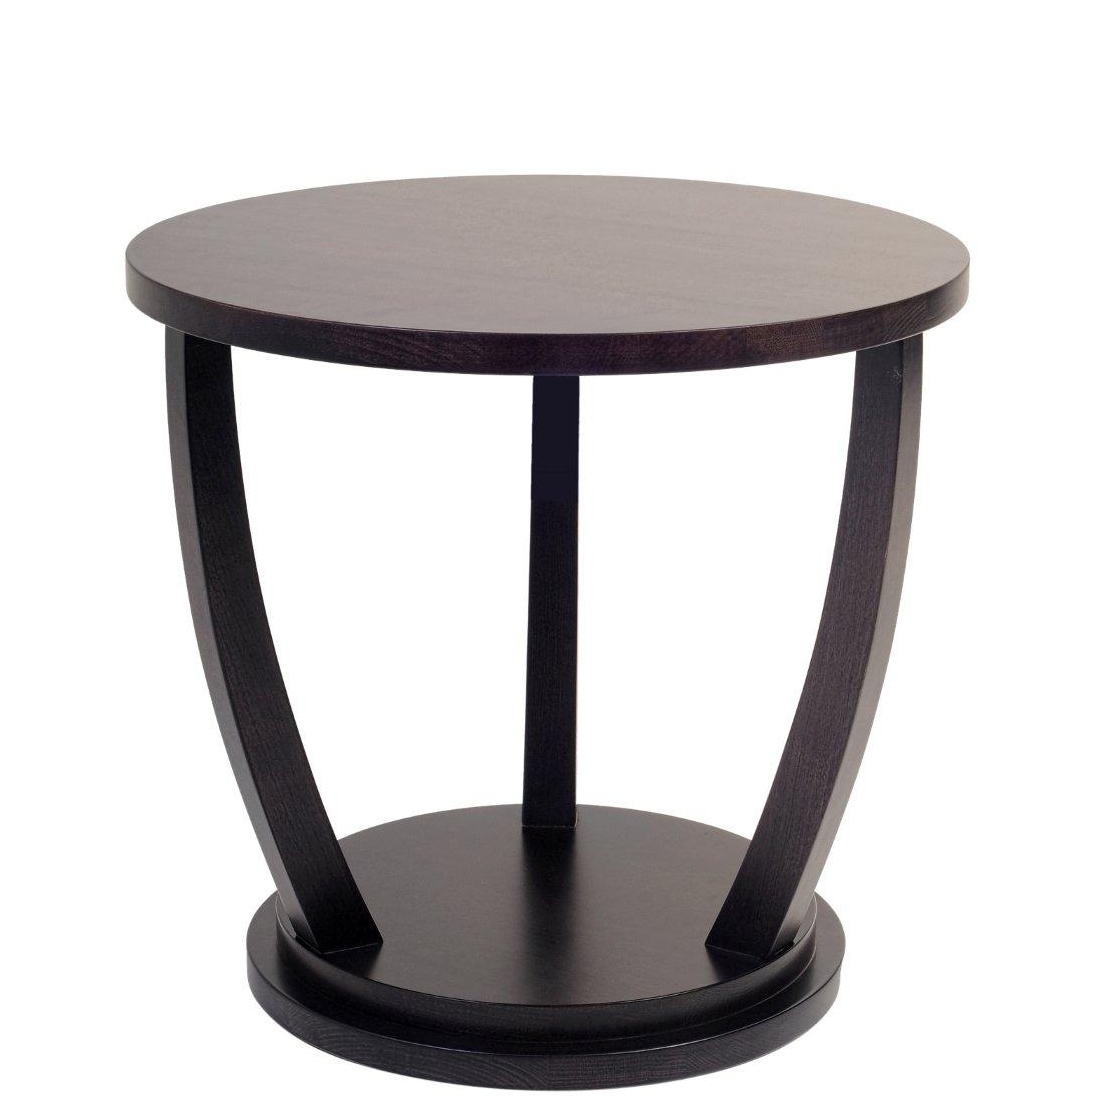 Beaumont Round Hsi Hotel Furniture